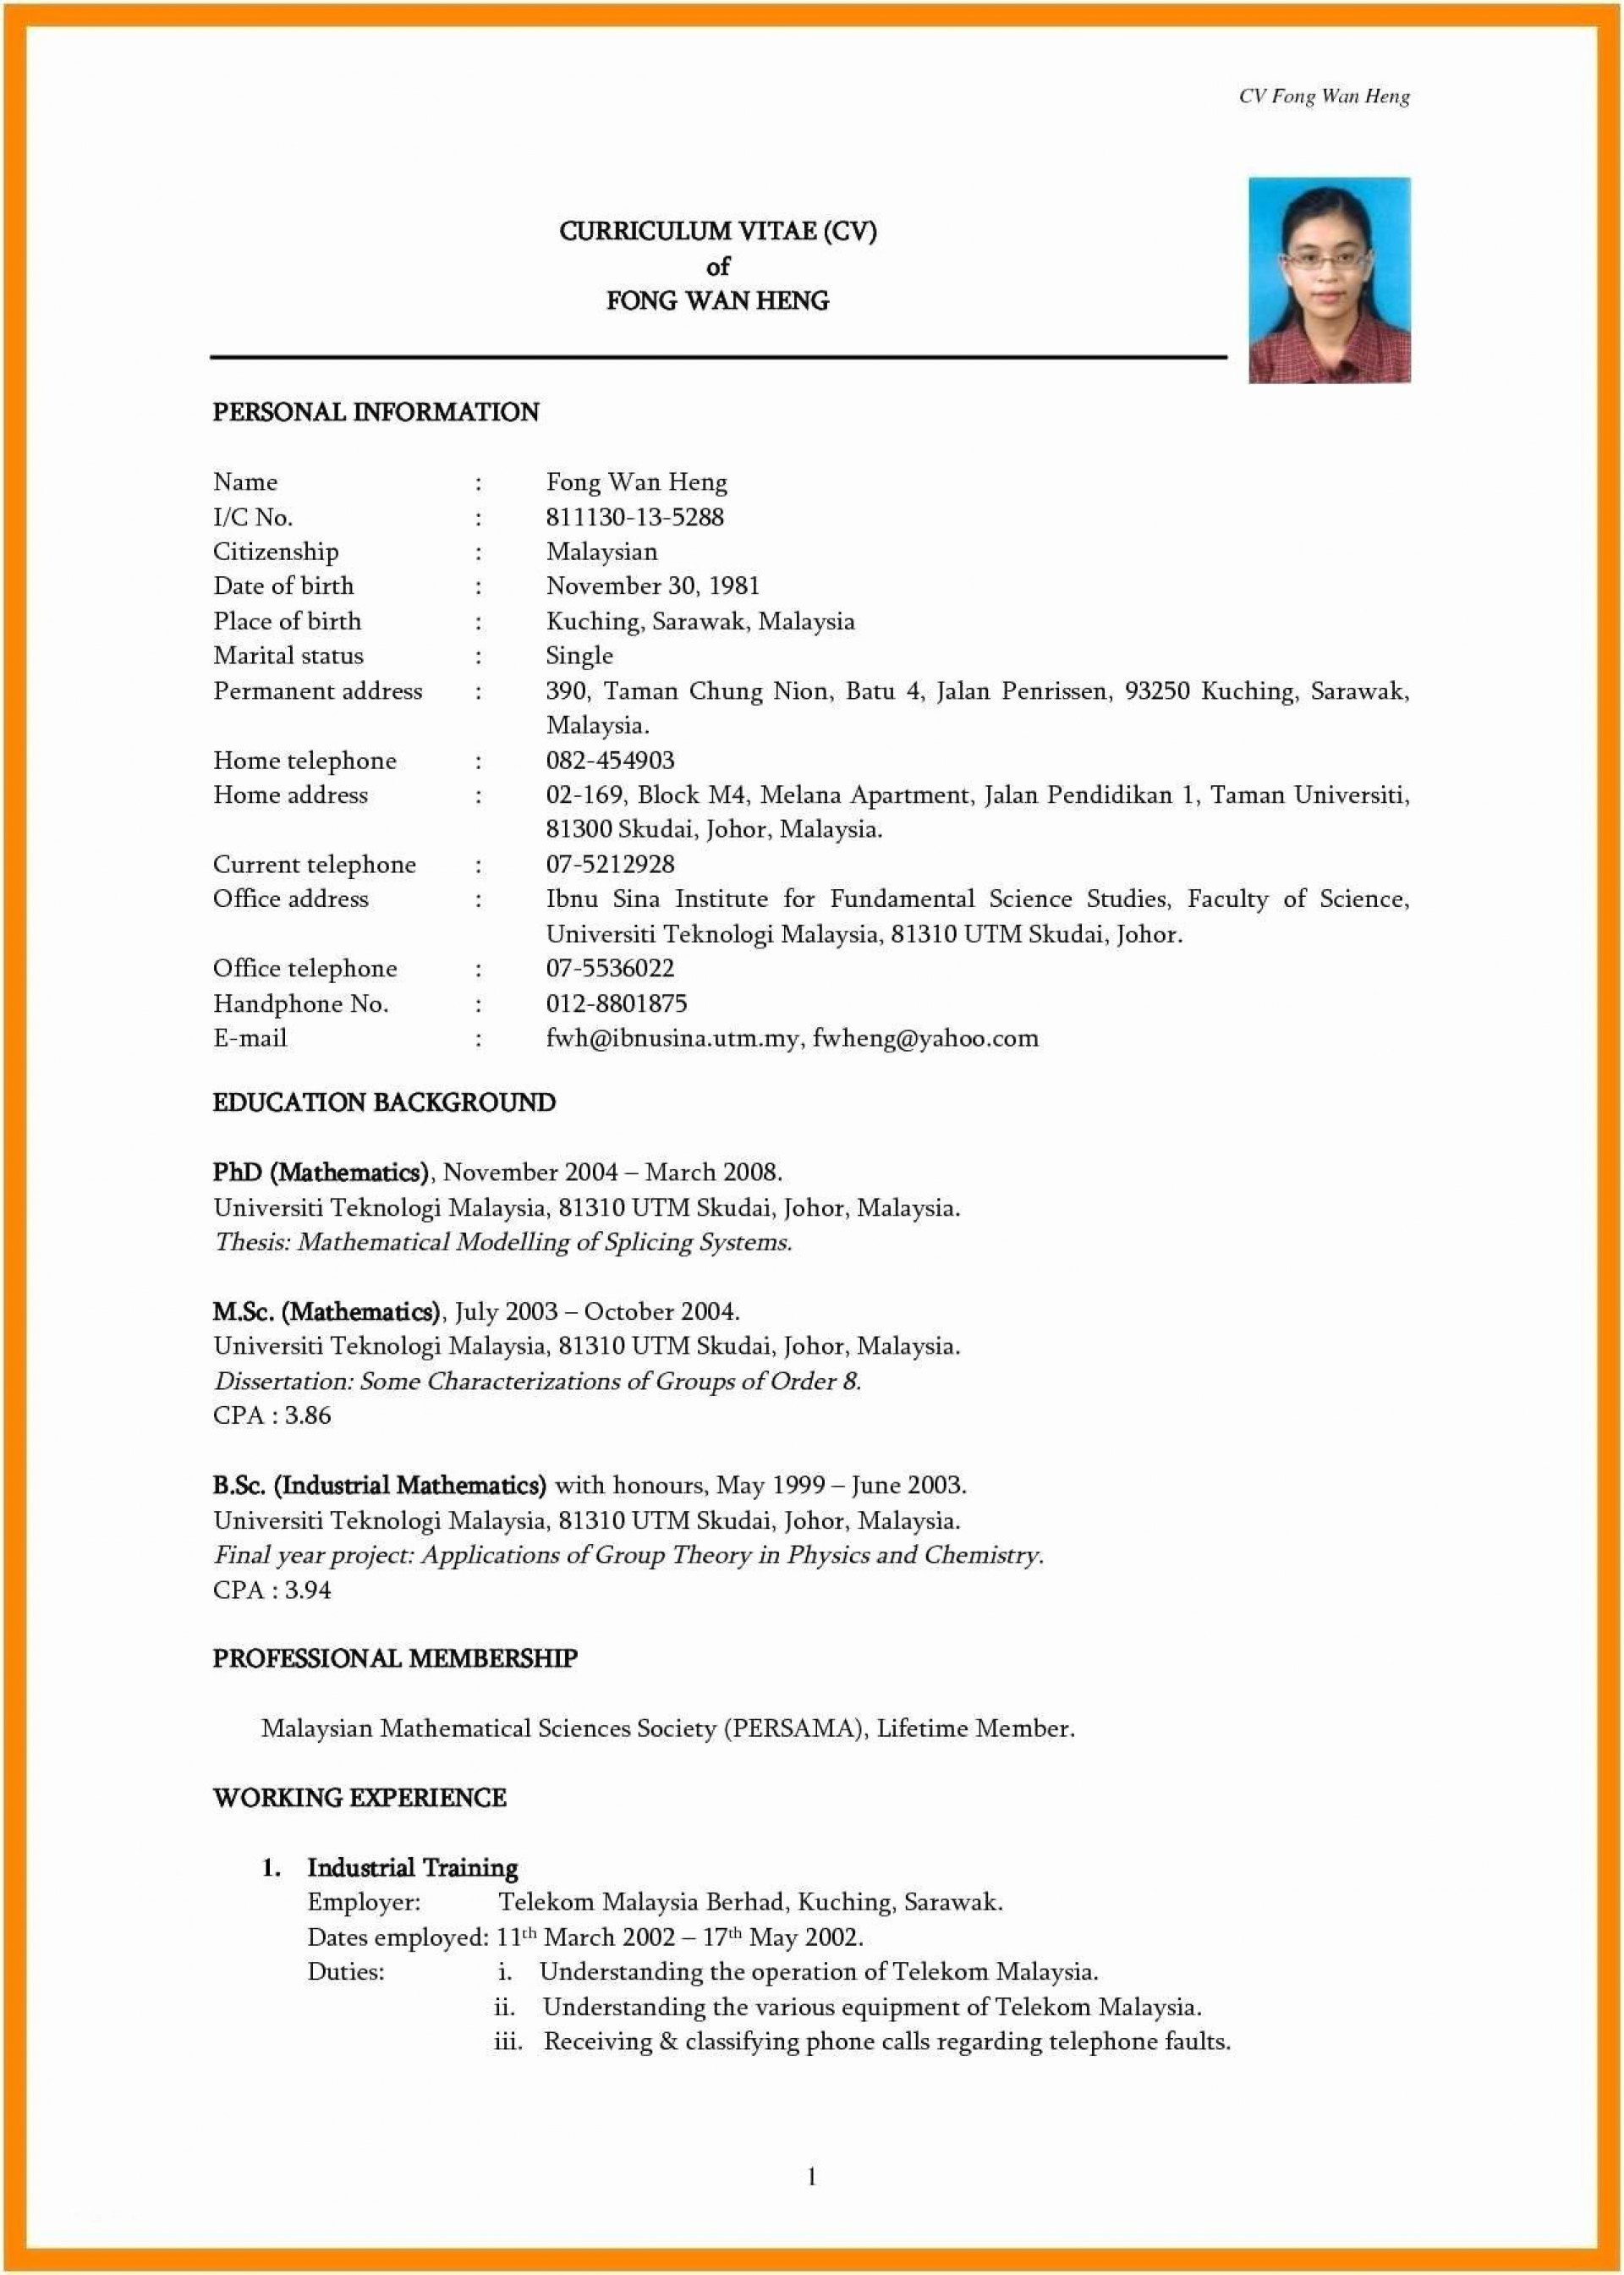 002 Formidable Free Resume Template 2015 Highest Quality 1920